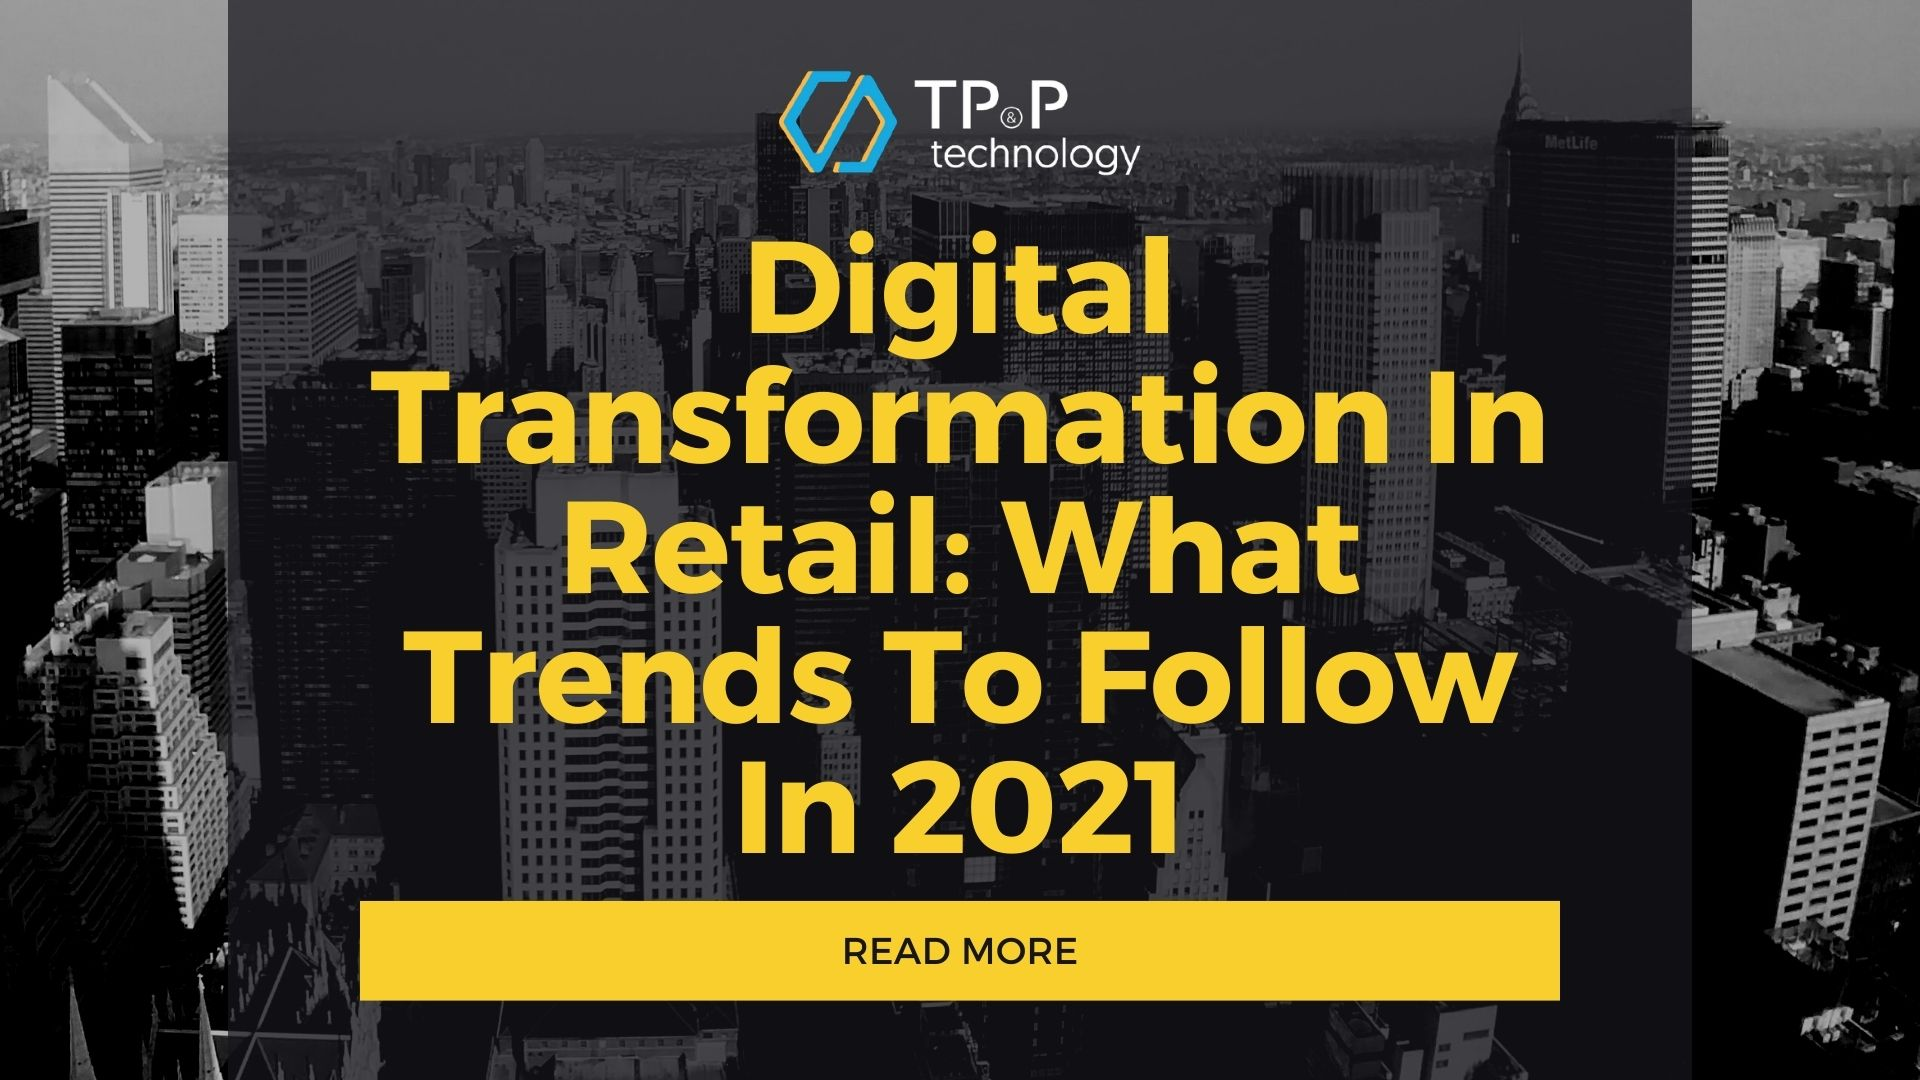 Digital Transformation In Retail: What Trends To Follow In 2021